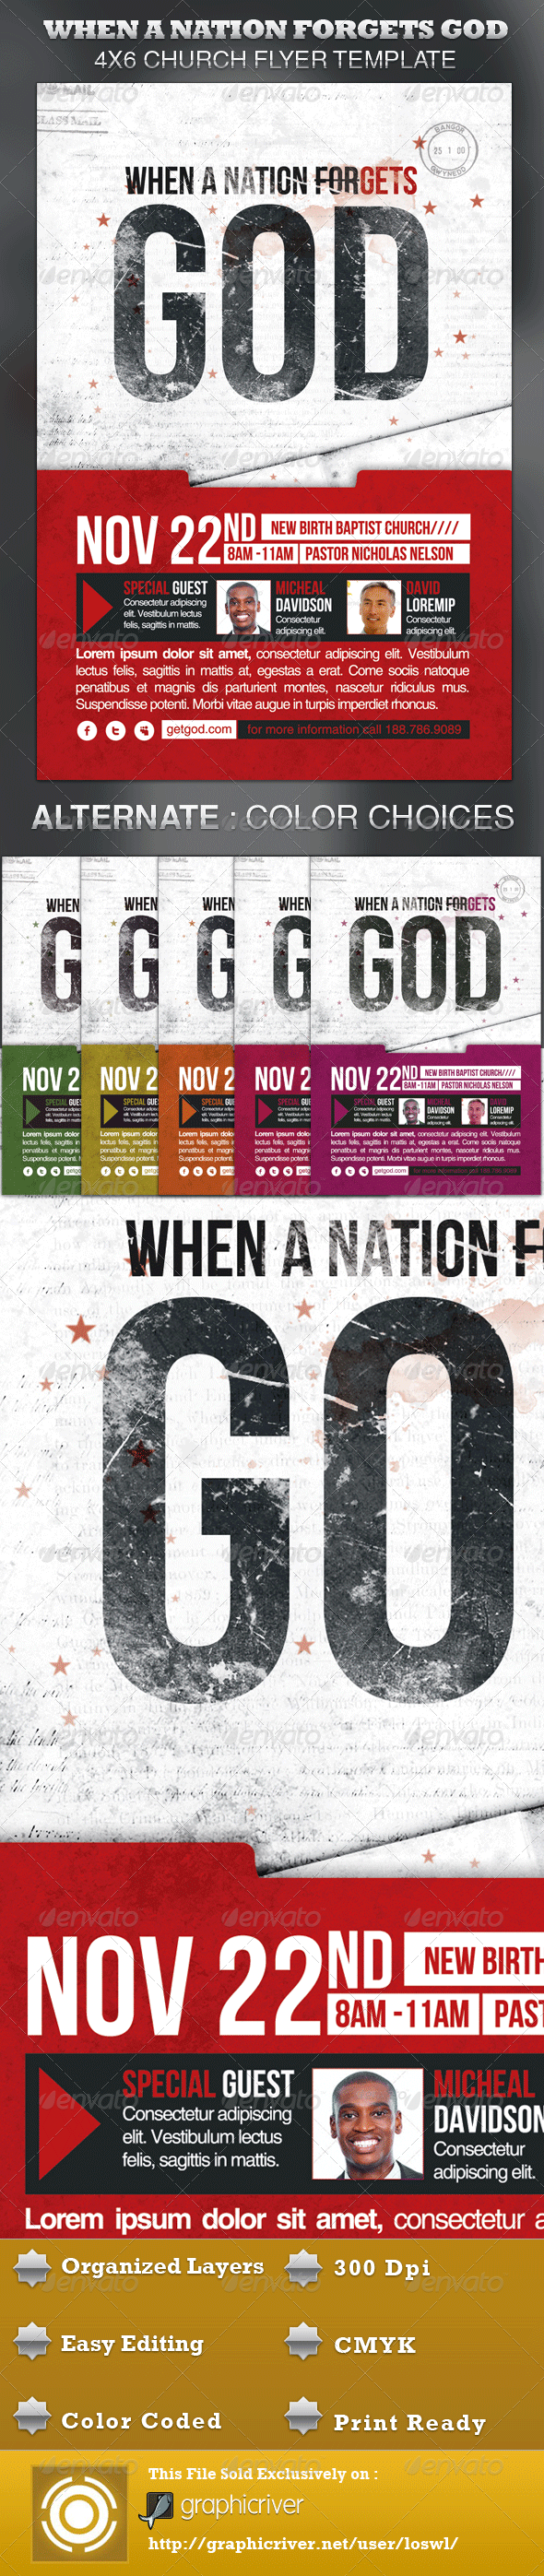 GraphicRiver When A Nation Forgets God Church Flyer Template 3182367